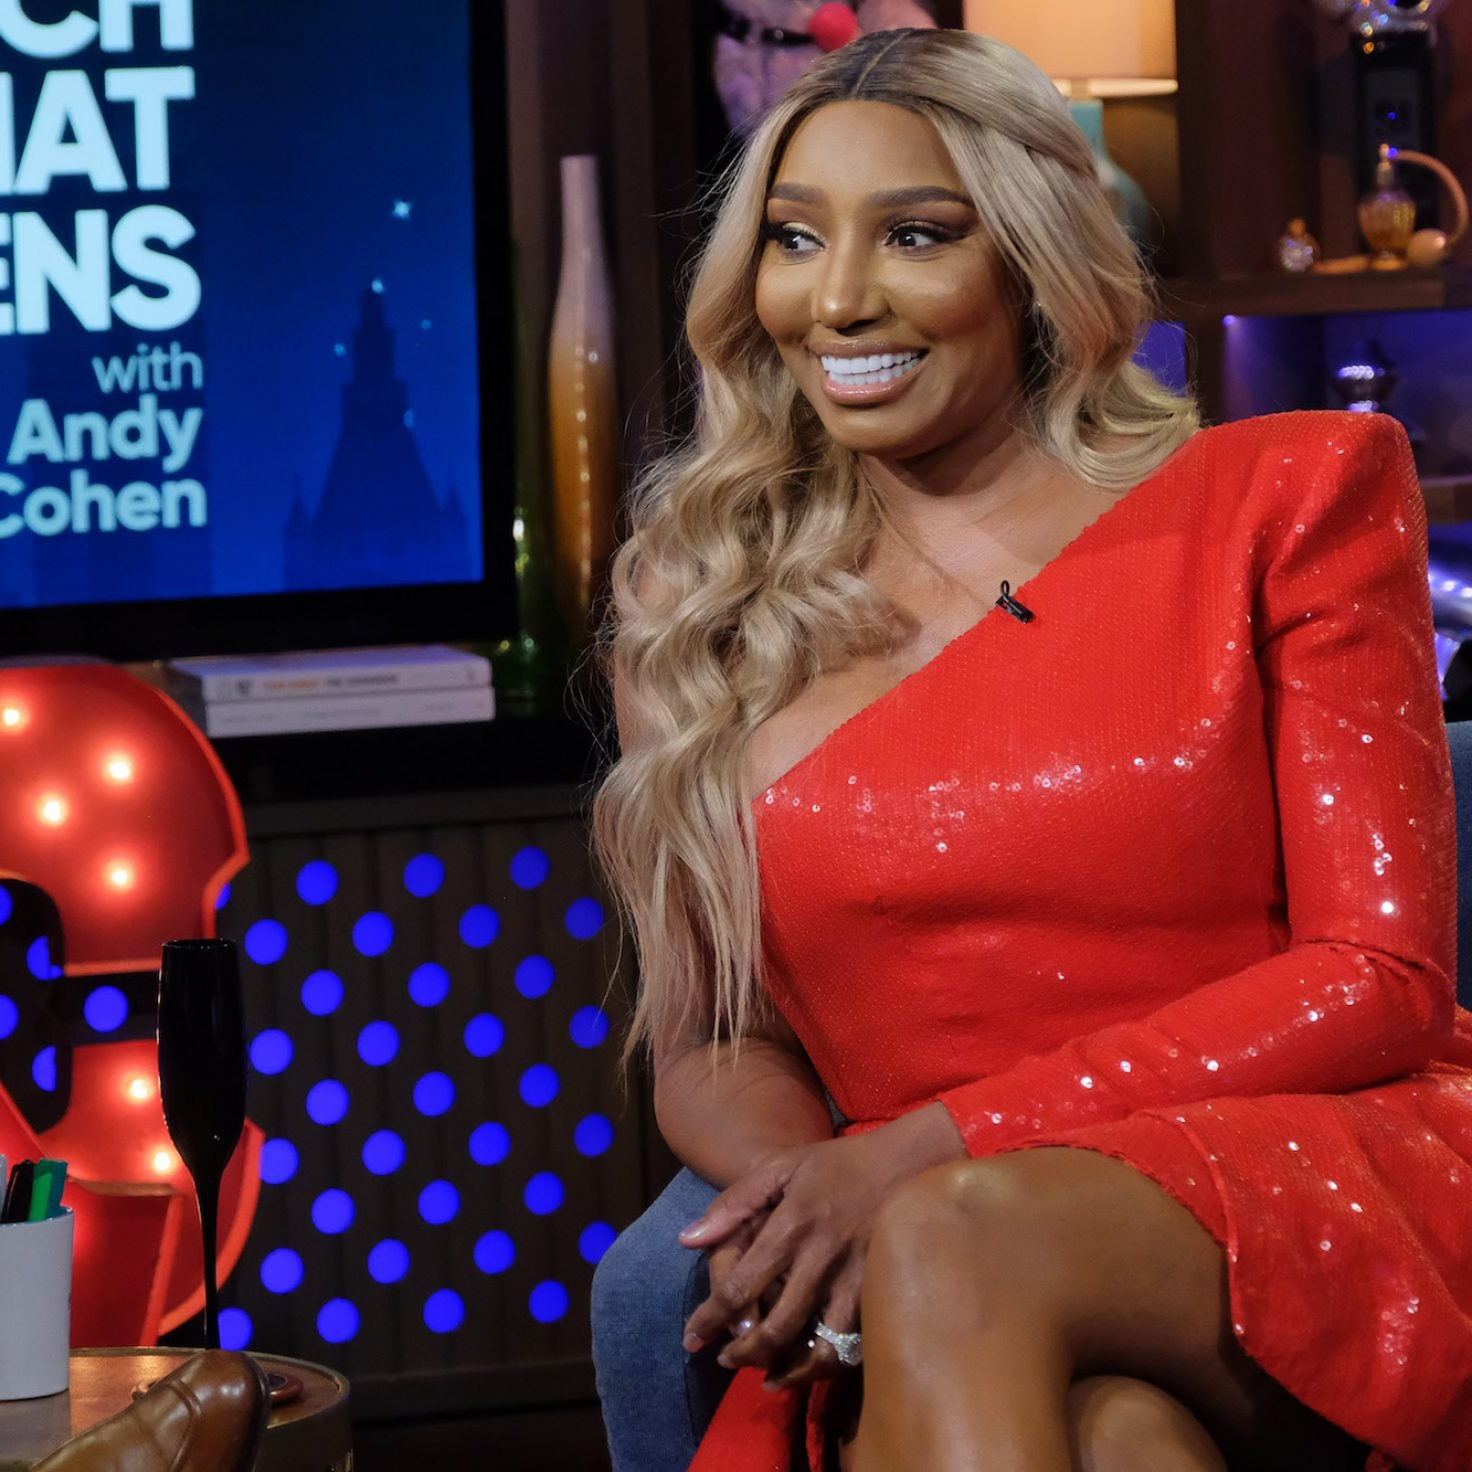 Nene Leakes Didn't Realize She Was Being Allegedly Followed At Bergdorf Goodman: 'I Didn't Pay Them Any Attention'